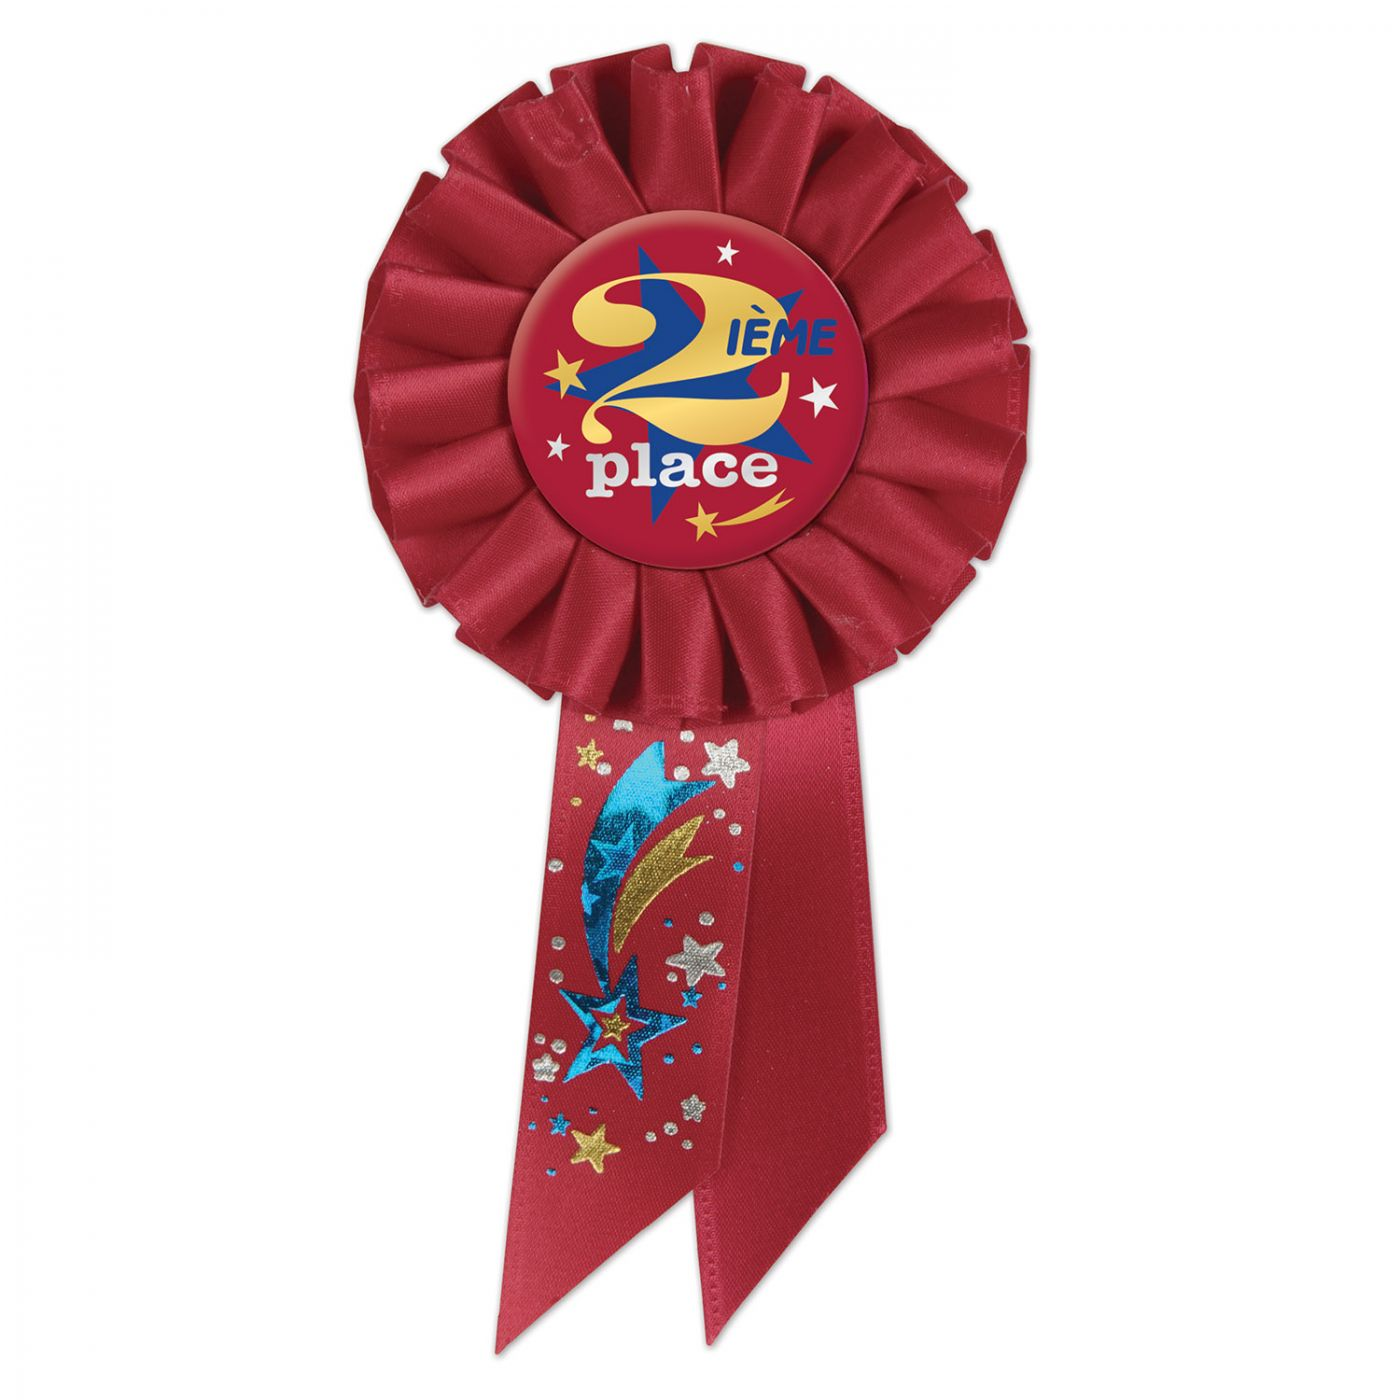 Image of 2ieme Place (2nd Place) Rosette (6)